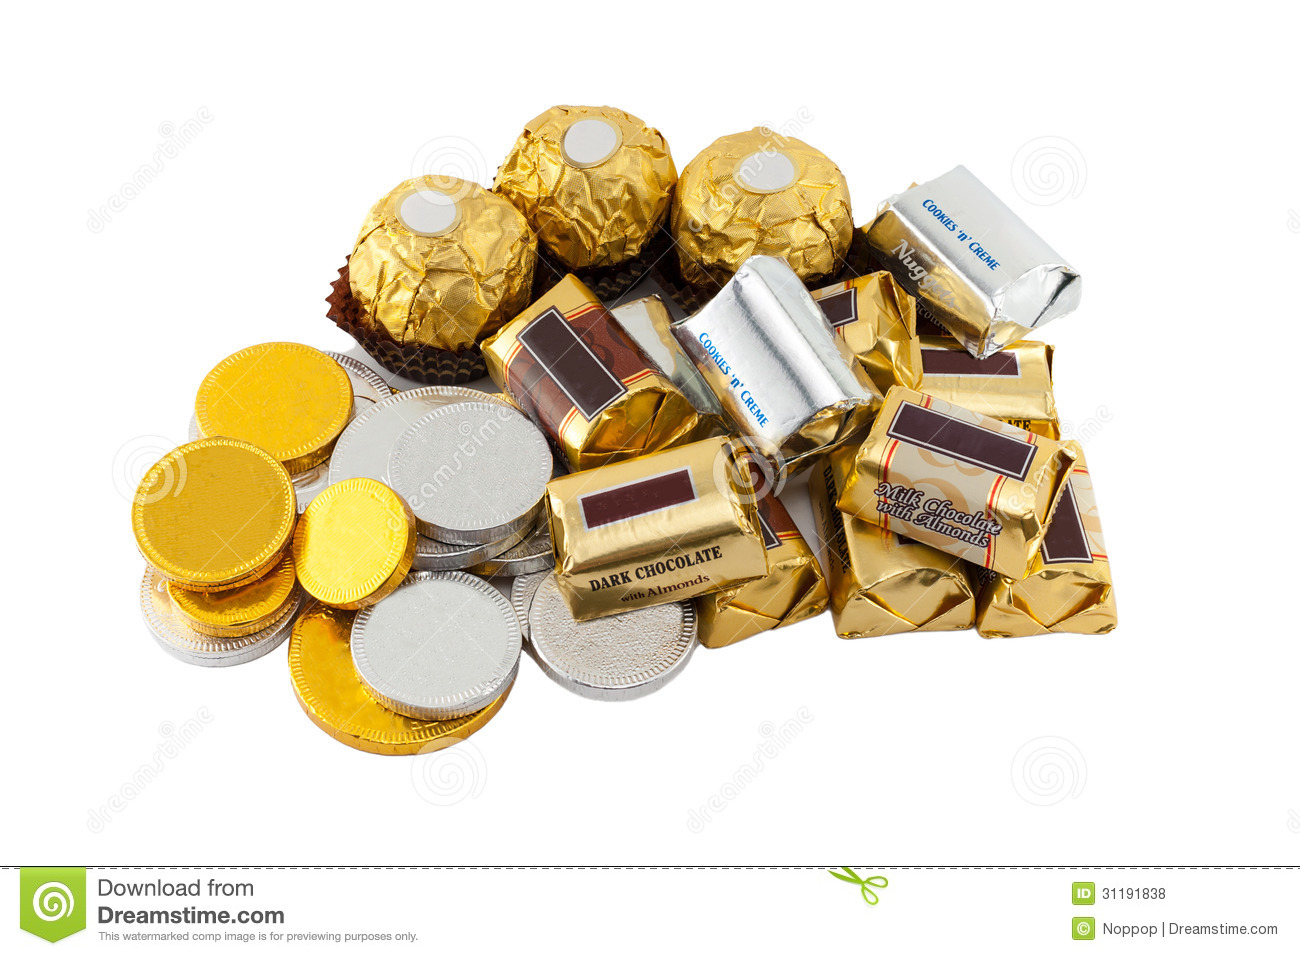 Many Types Of Chocolate Royalty Free Stock Photos - Image: 31191838